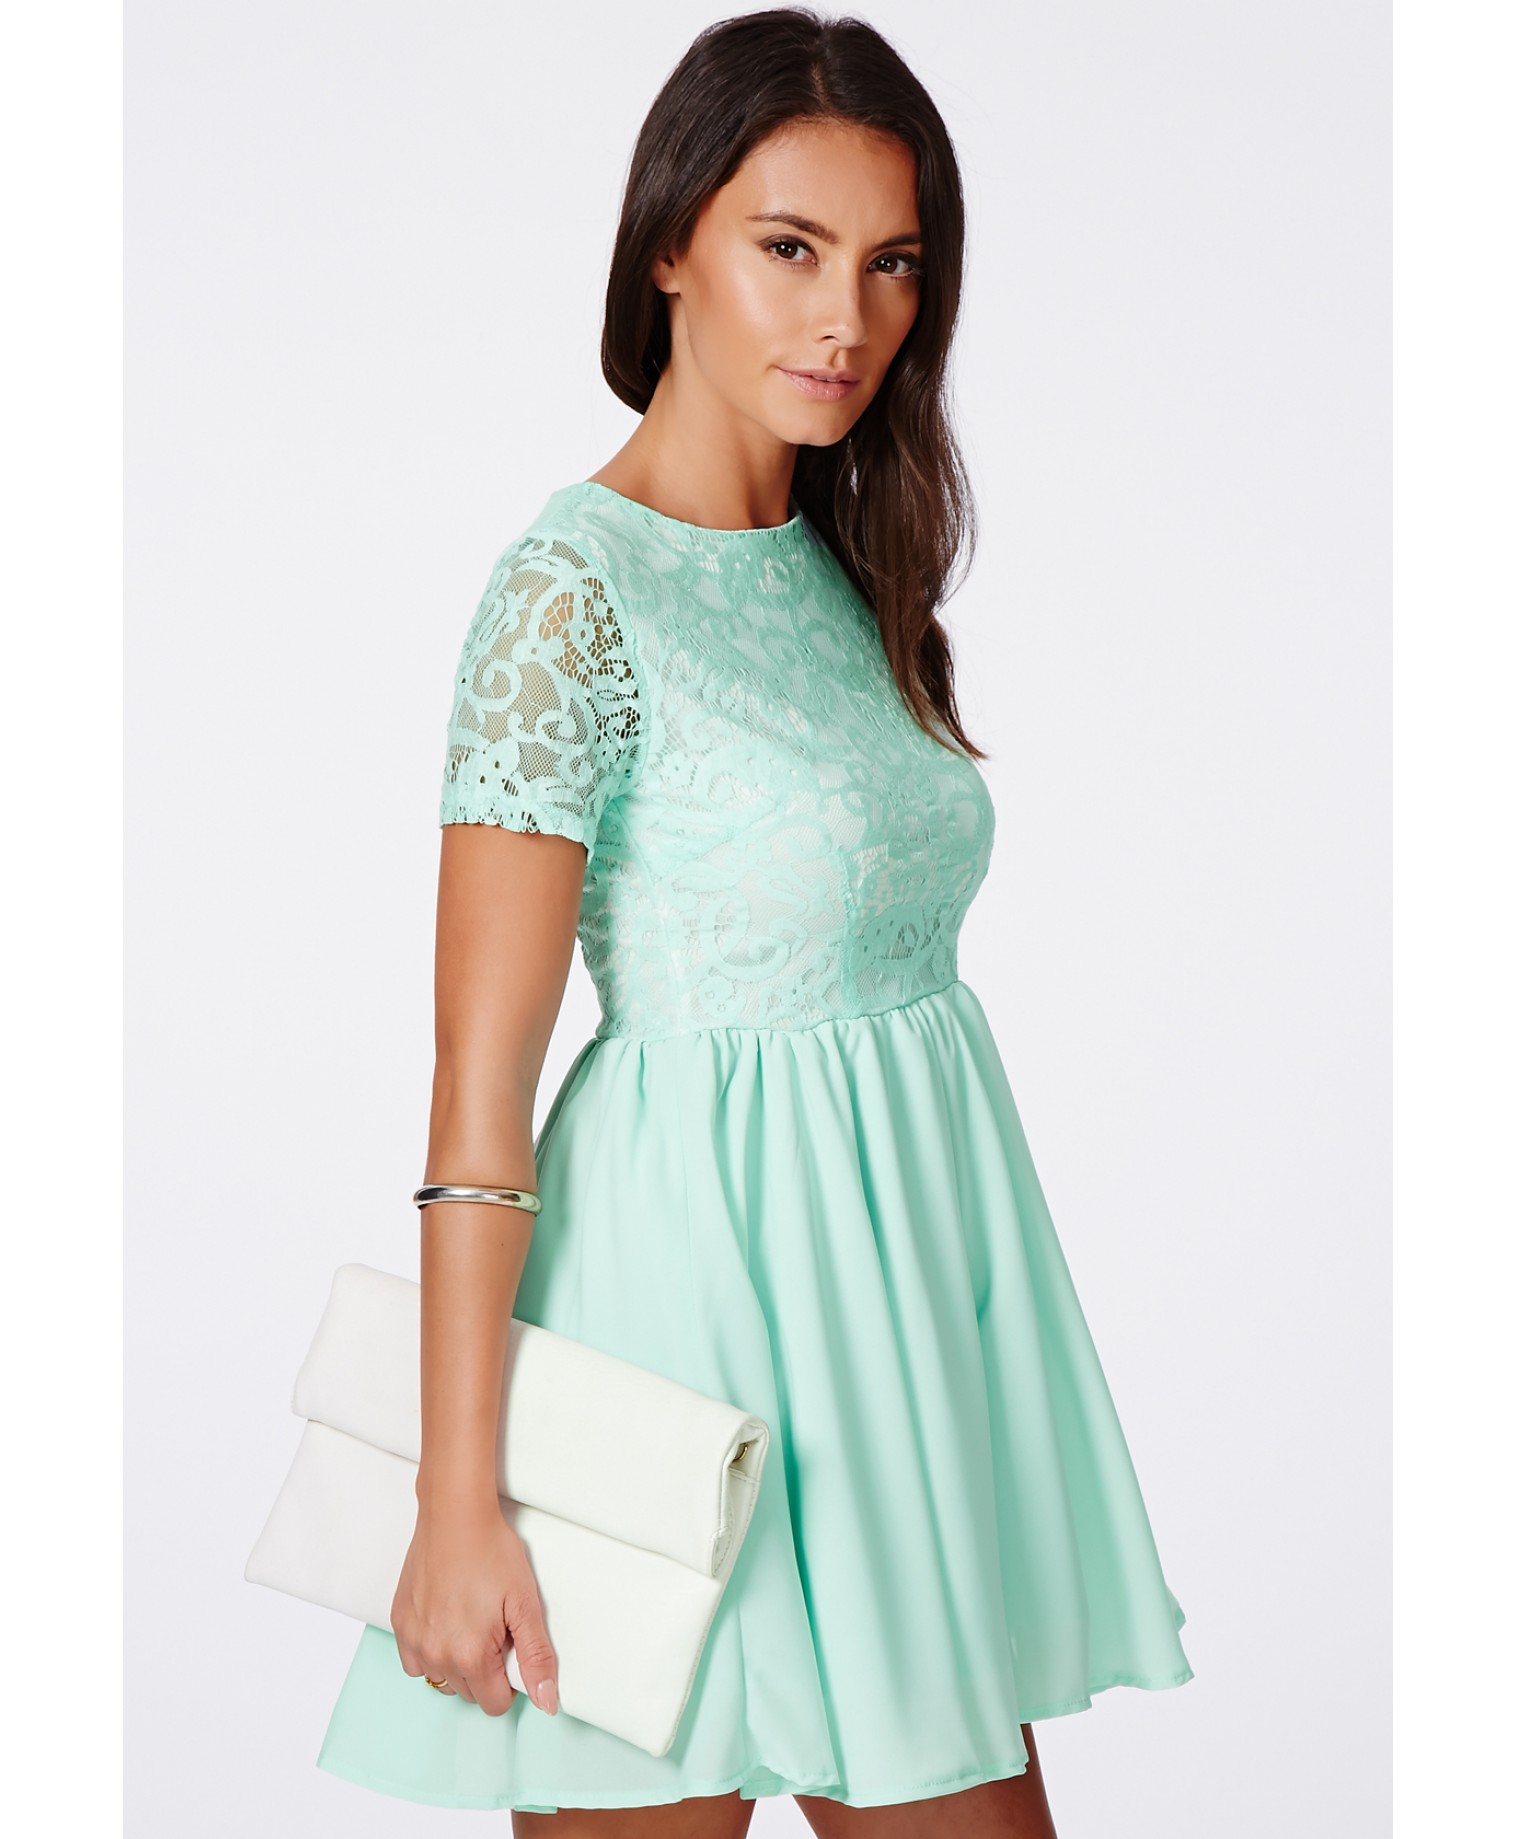 Lyst - Missguided Sofitha Mint Lace Puffball Skater Dress in Green